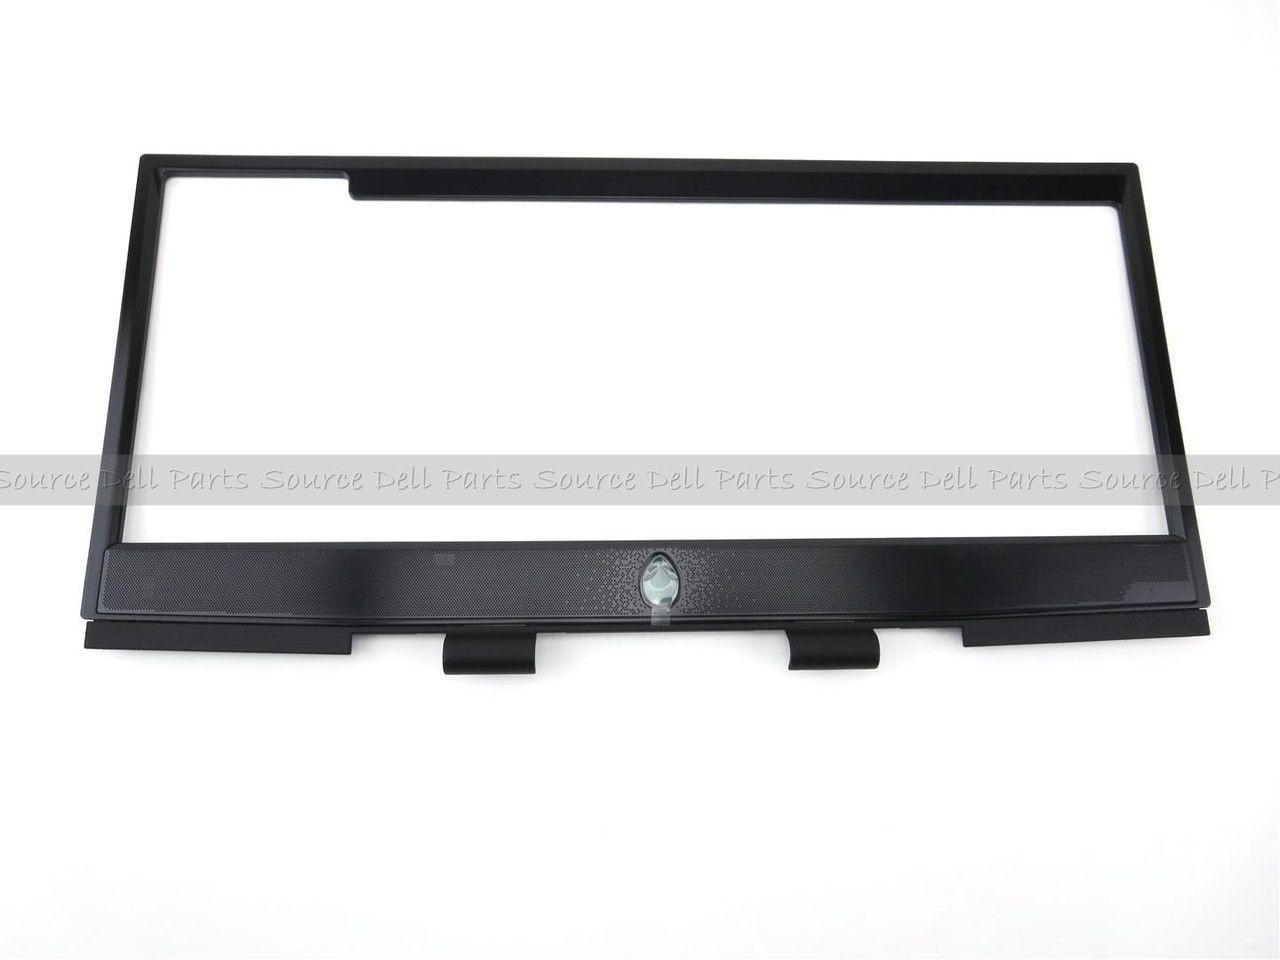 Alienware M14x Center Control Power Button Cover Hinge Cover - XY3YC